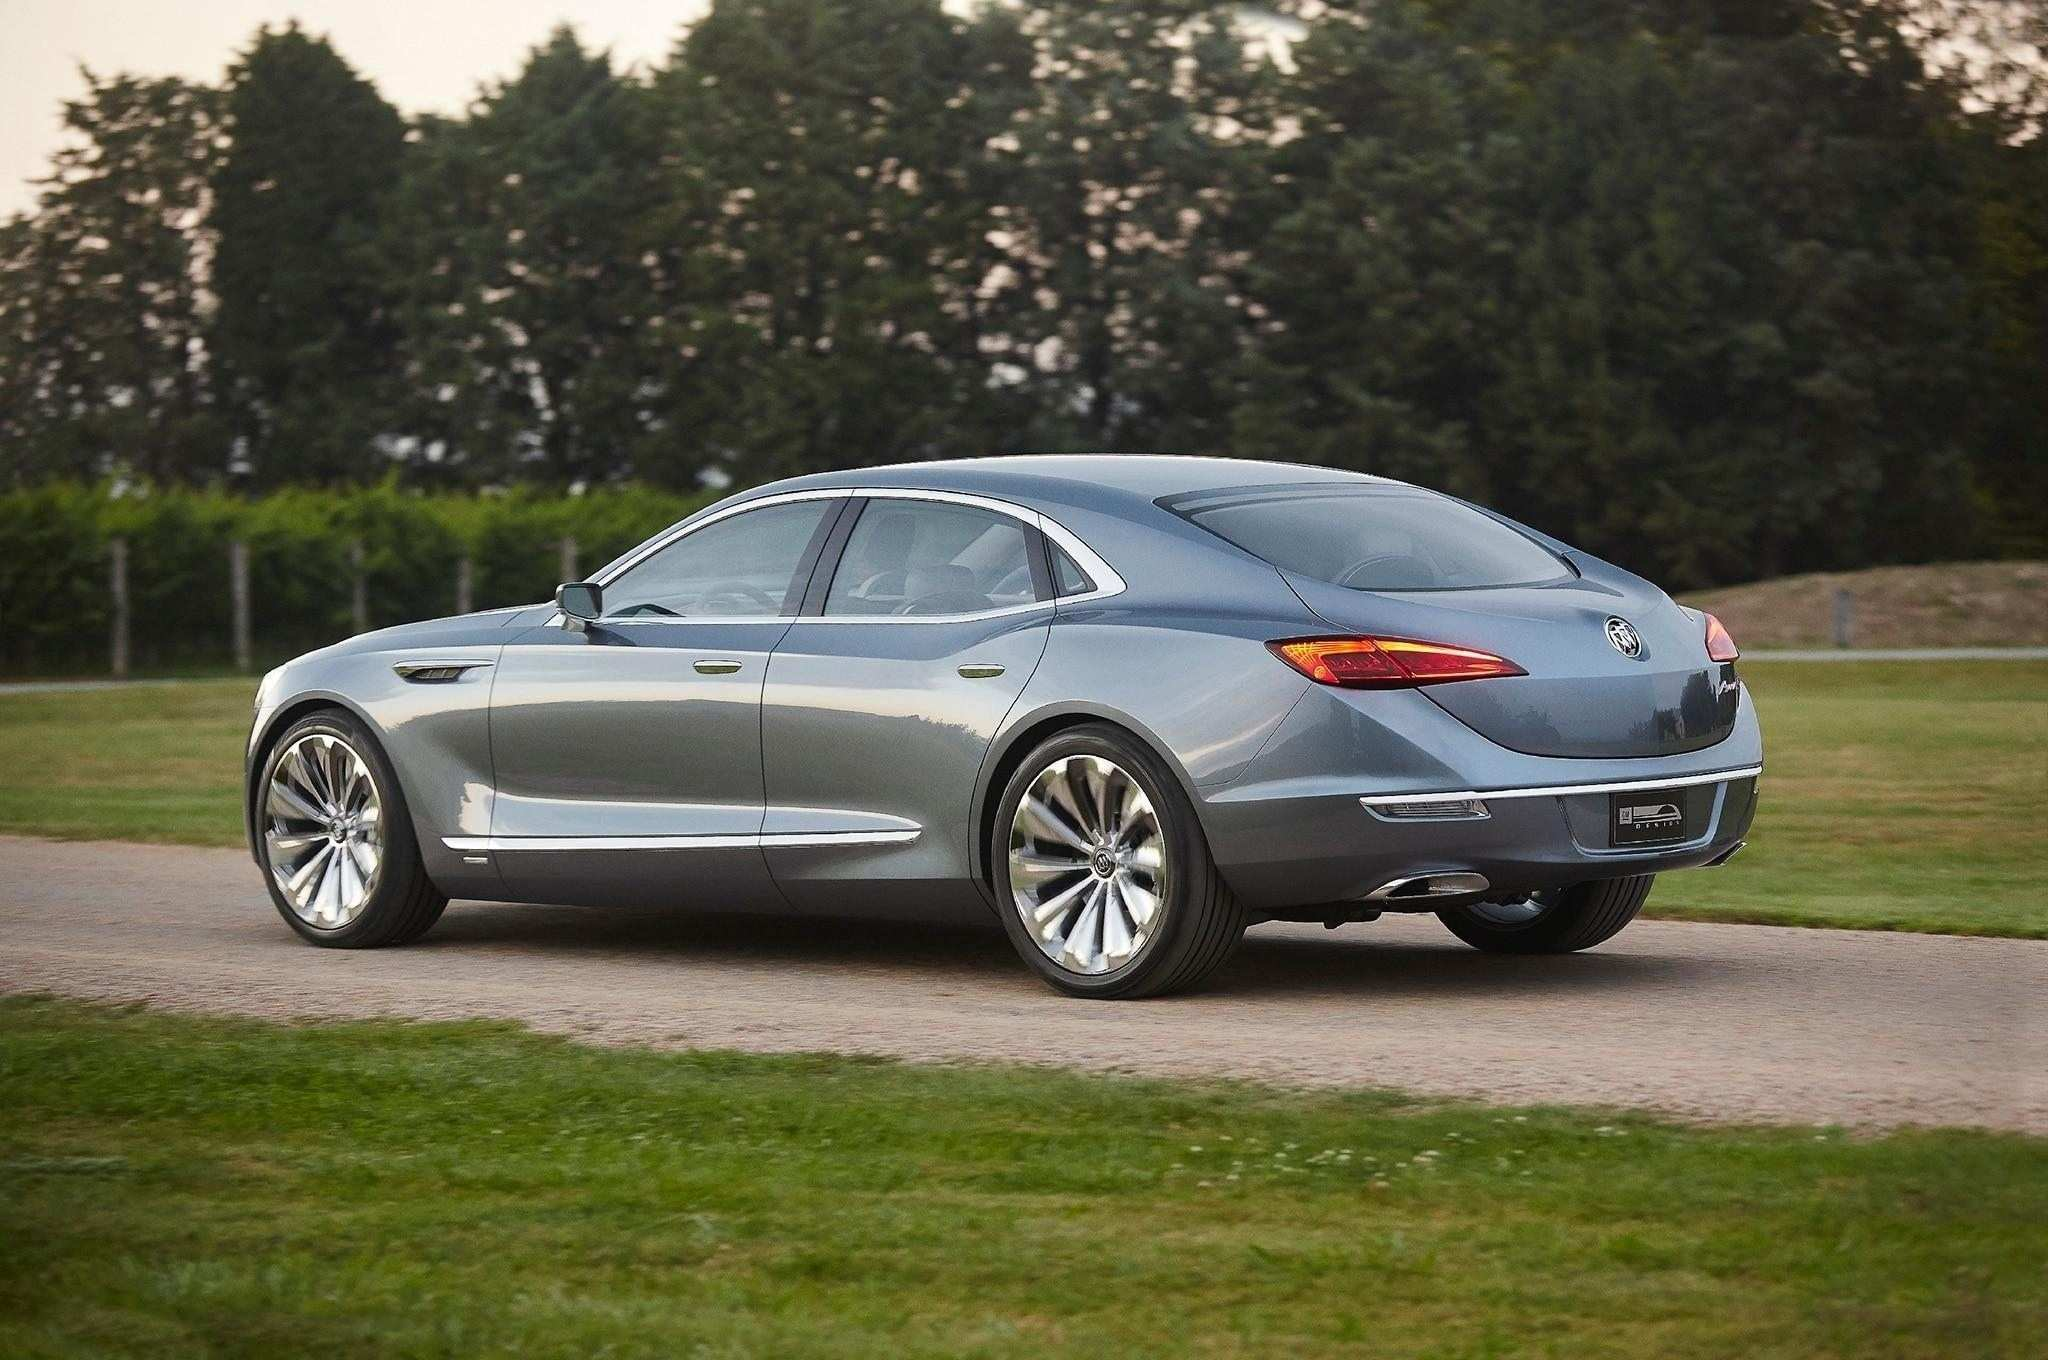 74 Concept of 2019 Buick Park Avenue Price with 2019 Buick Park Avenue